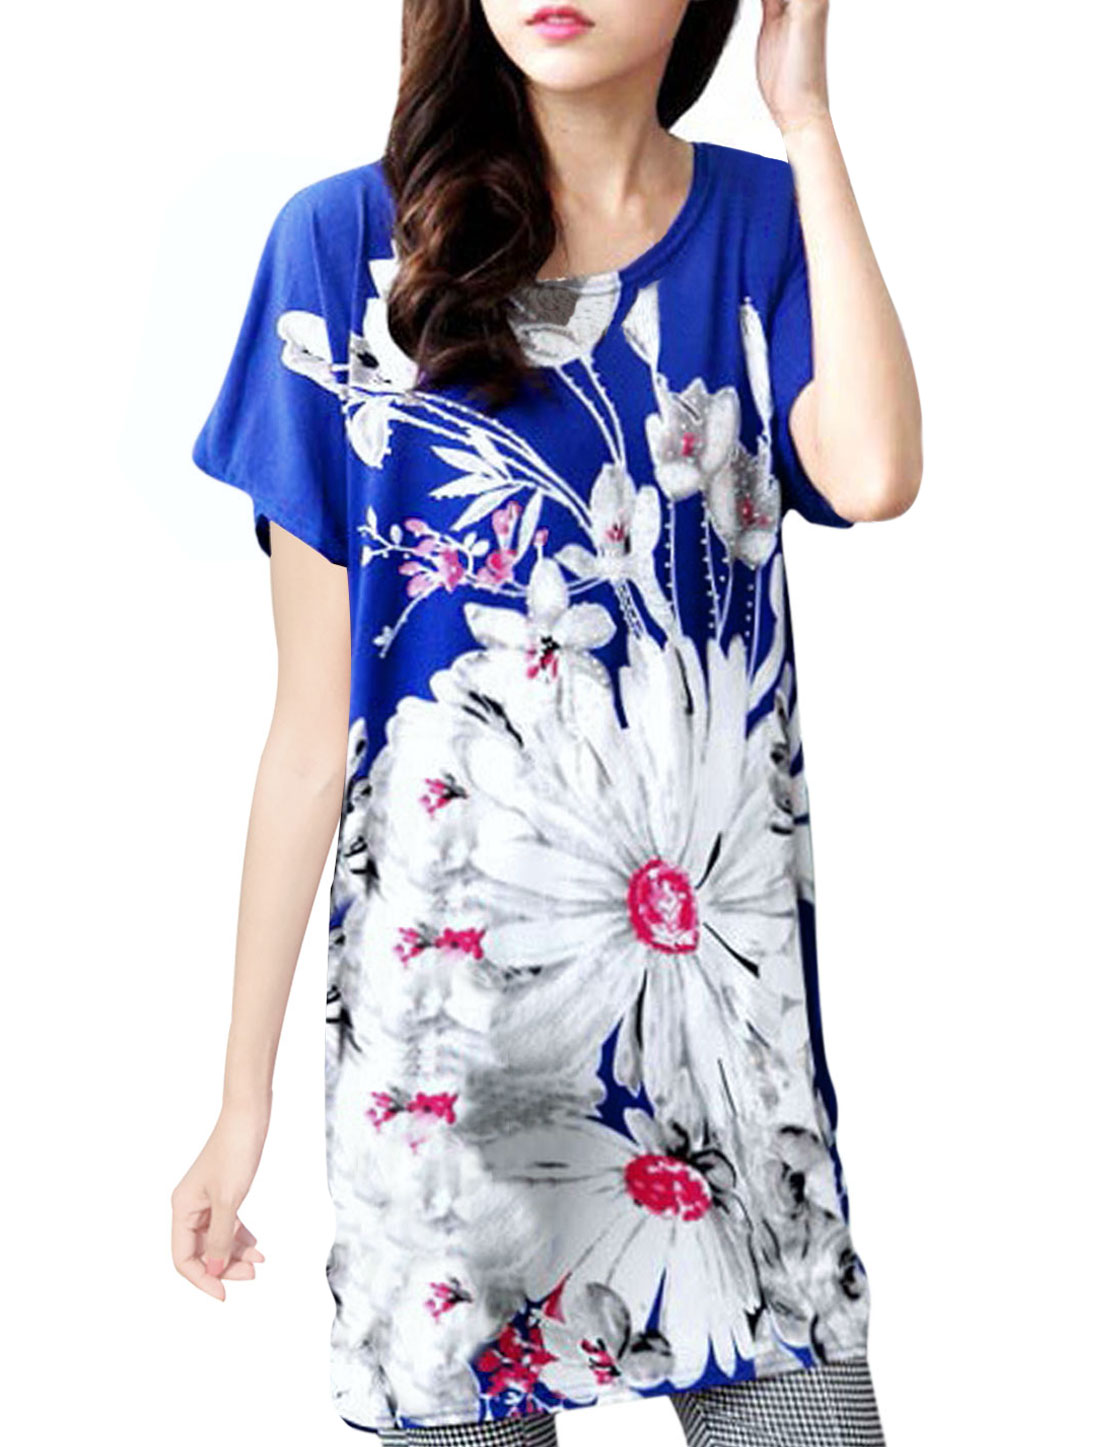 Women Flower Pattern Batwing Design Loose Fit Tunic Top Royal Blue S